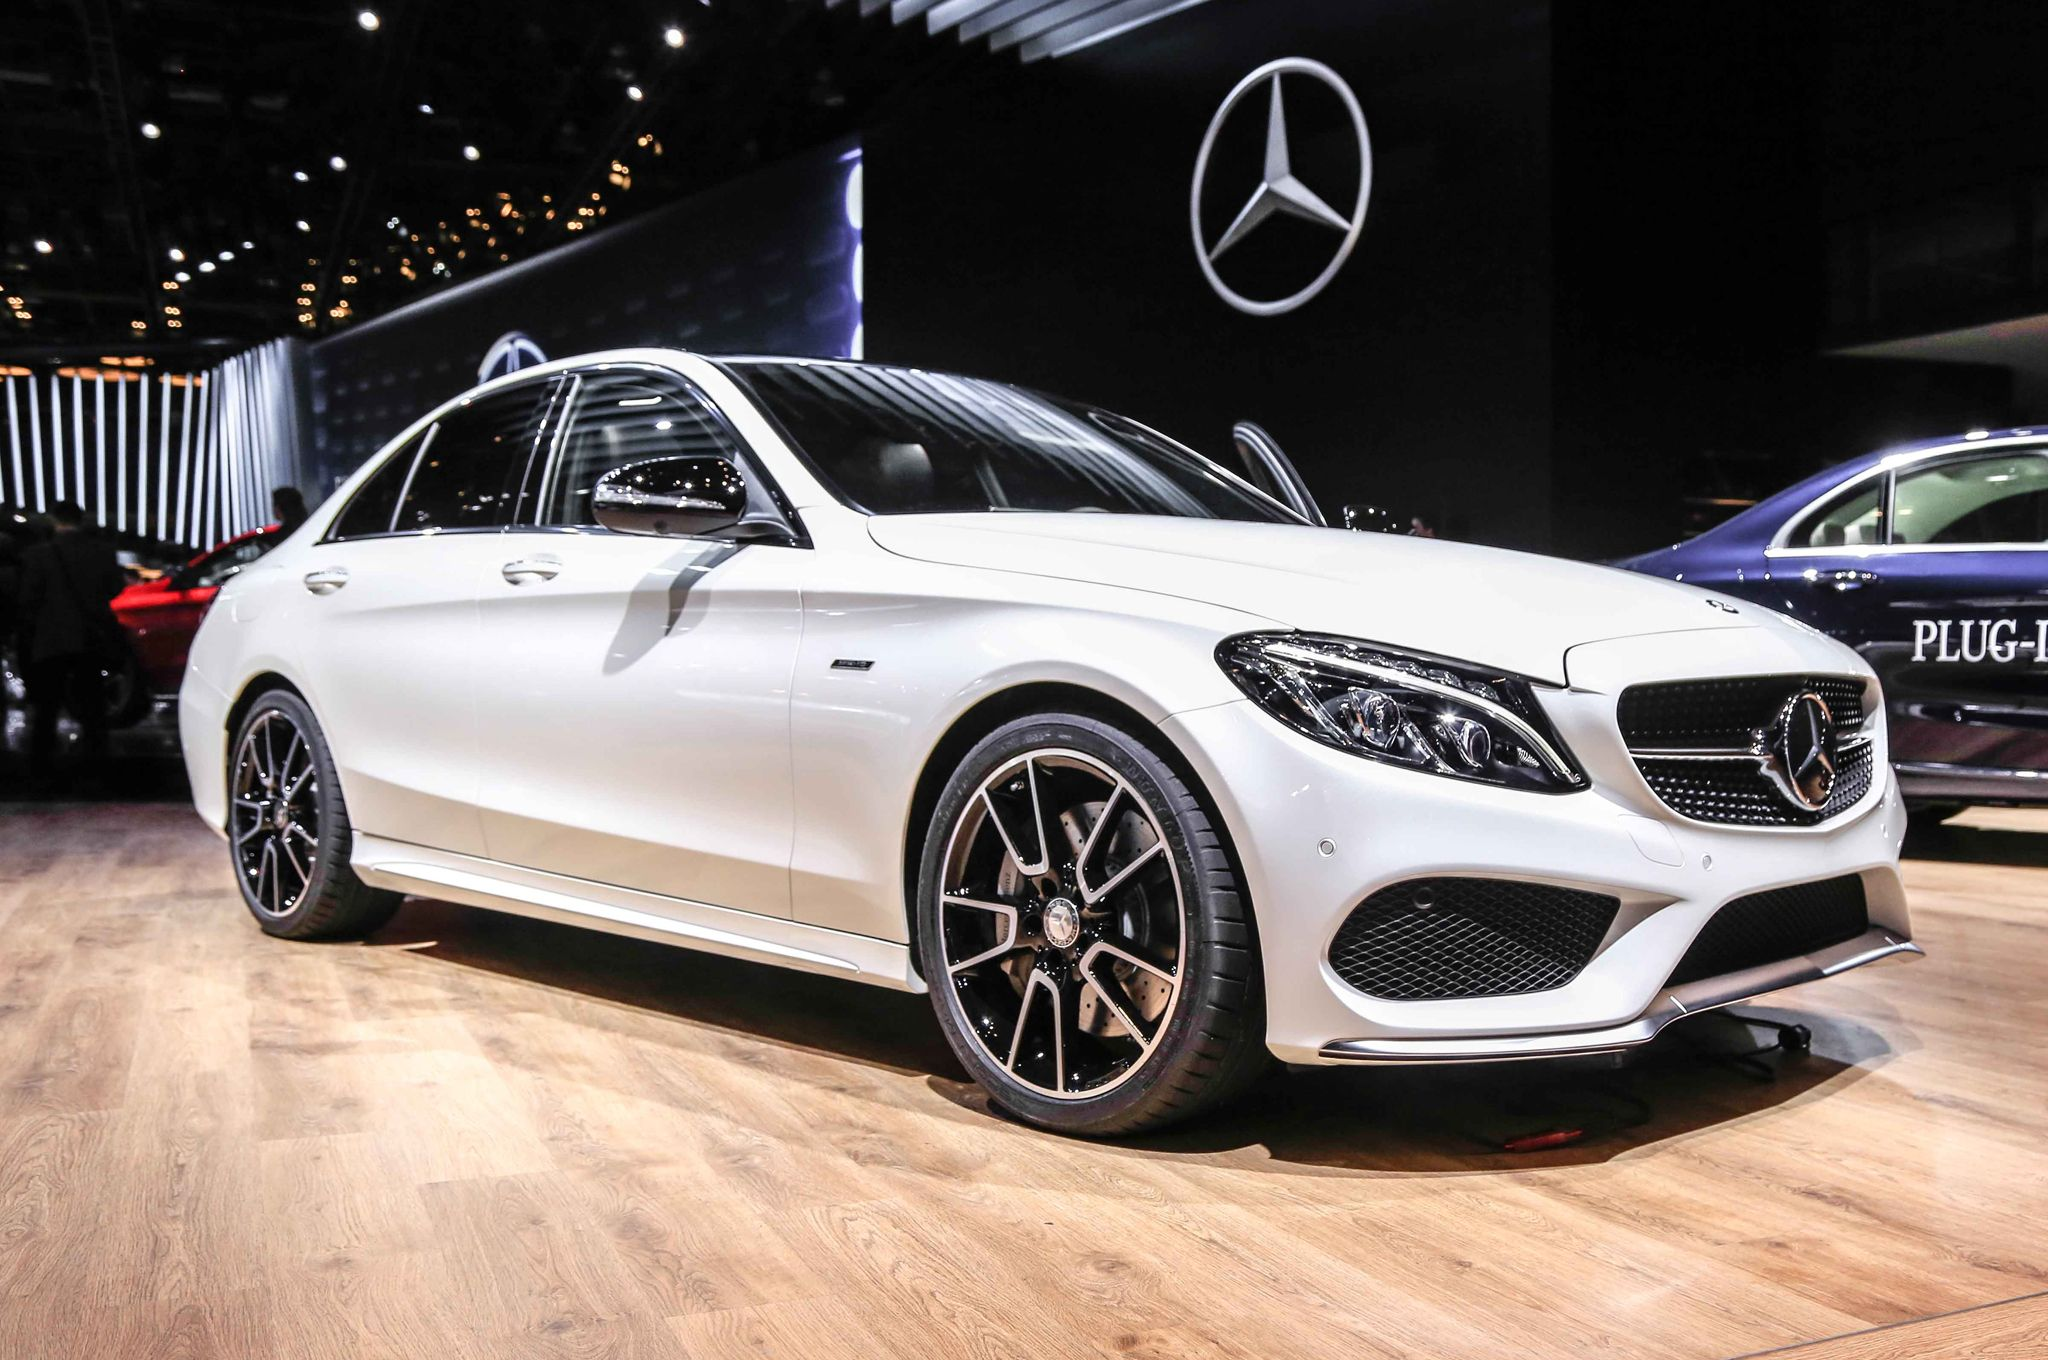 Top 10 Horsepower Hungry Cars From The Detroit Show Mercedes Benz Mercedes Benz Models Benz